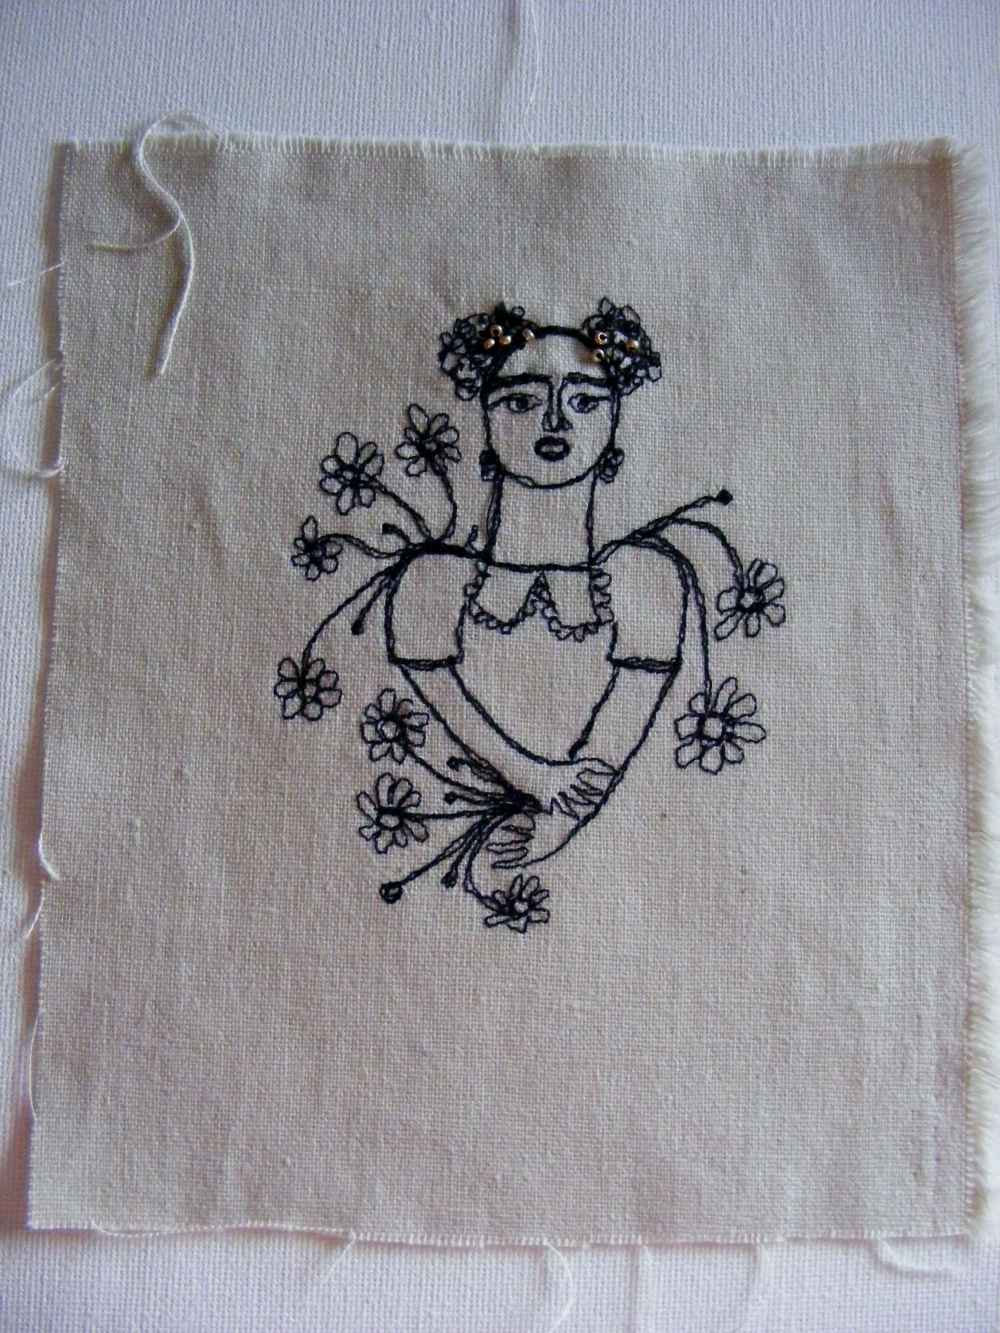 Miss Freda - original embroidery portrait